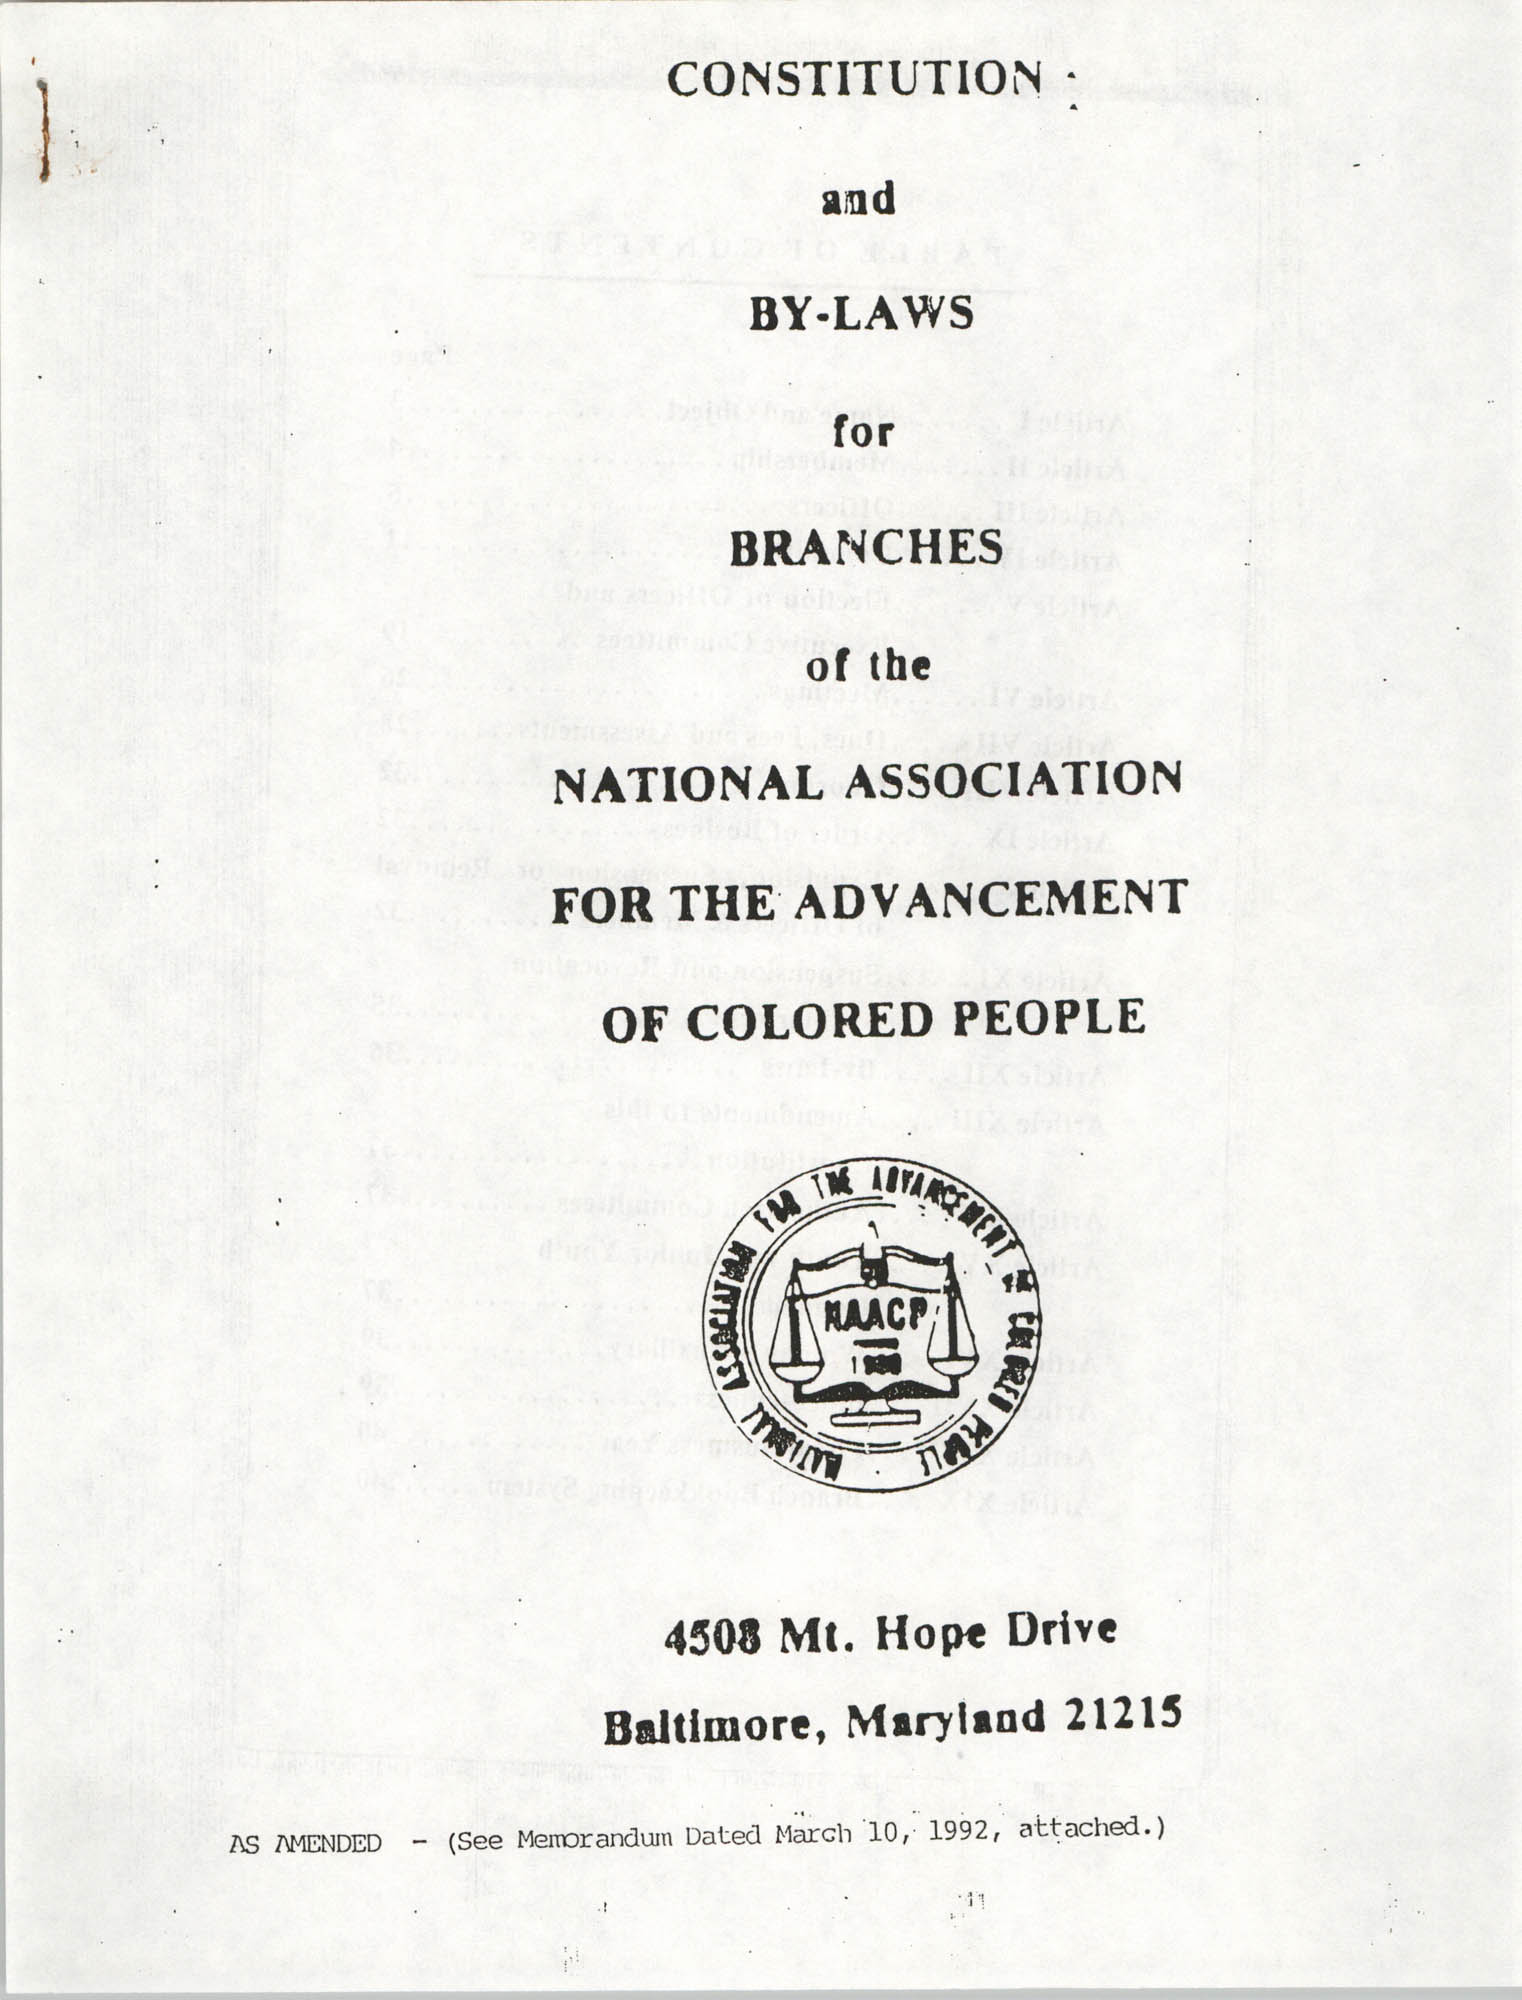 Constitution and By-Laws for Branches of the NAACP, March 1992, Cover